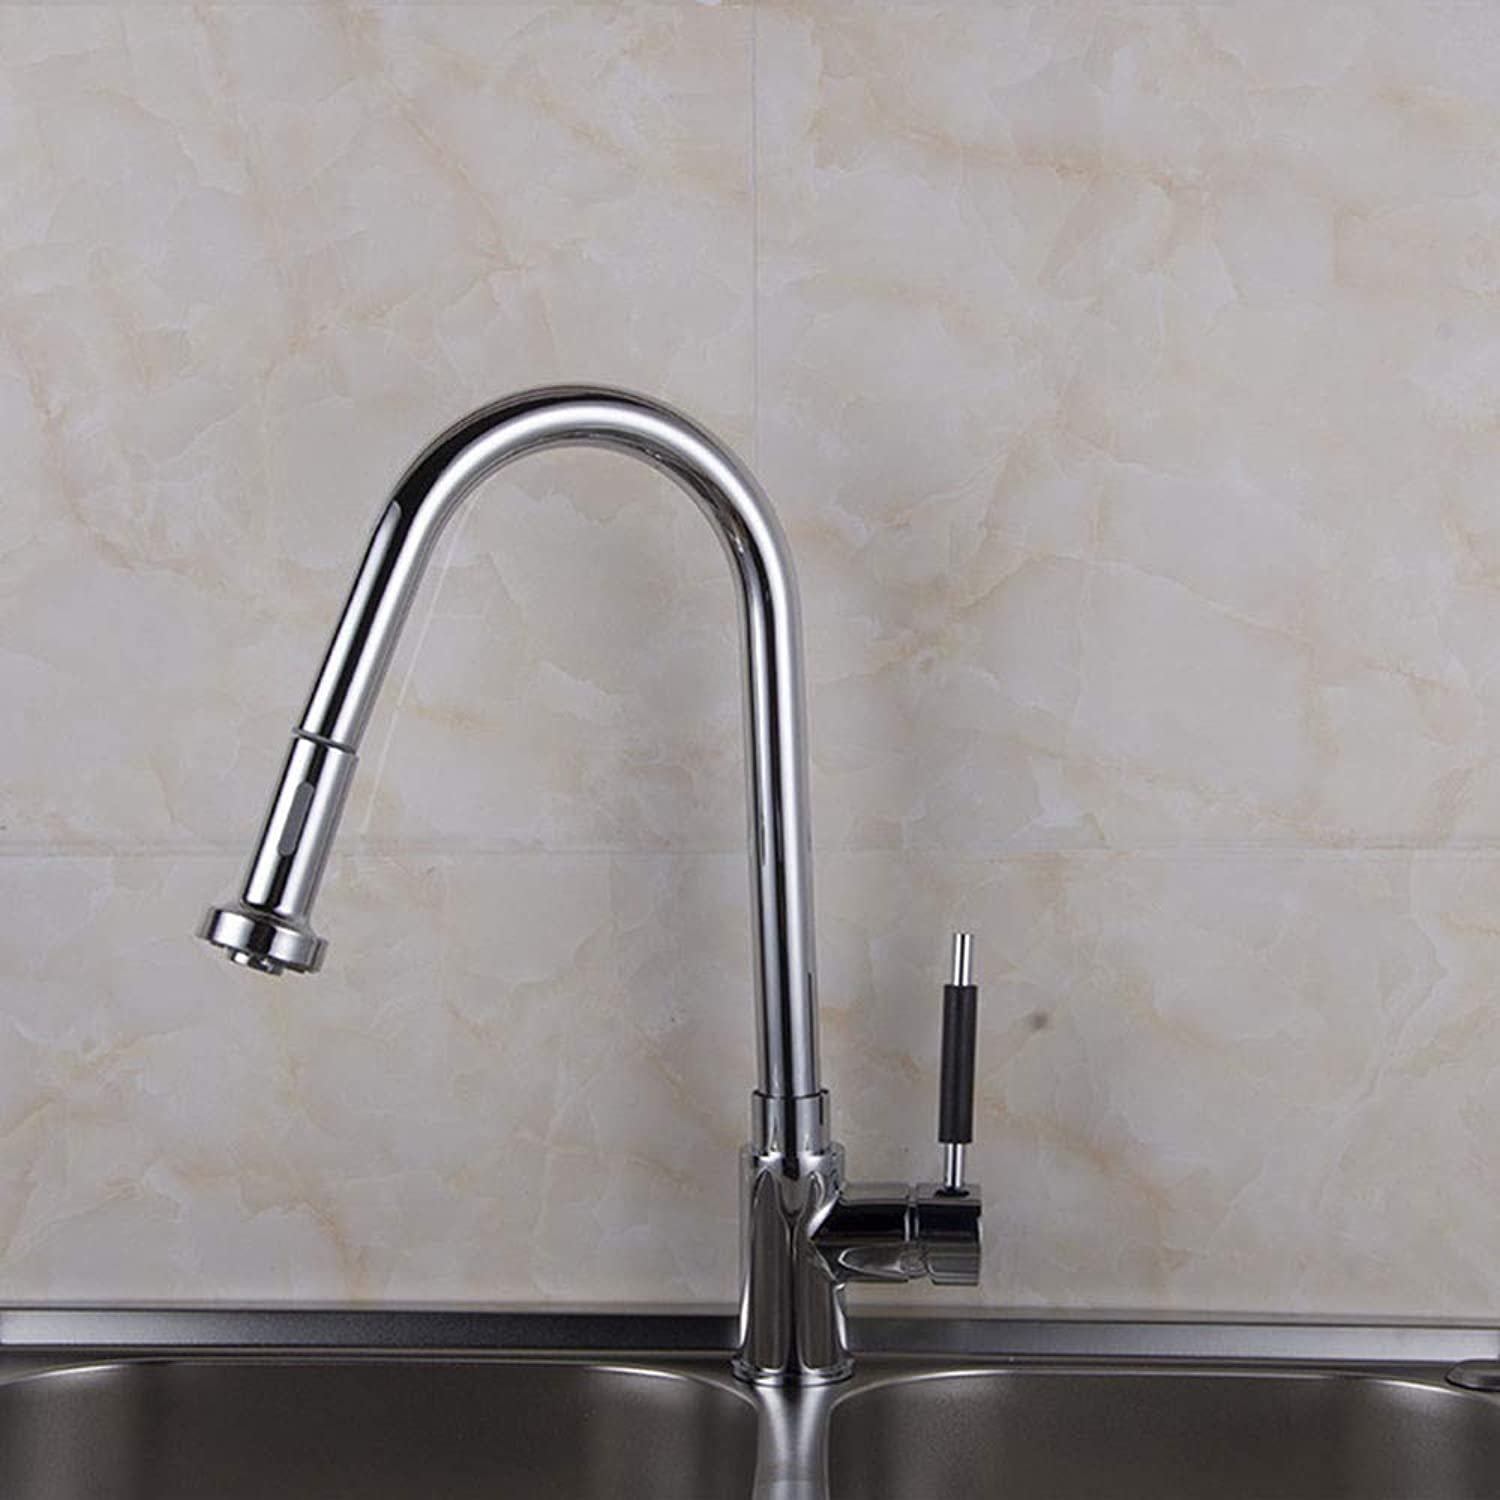 Kitchen Pull Faucet Copper hot and Cold Sink Faucet Sink Sink Sink Faucet